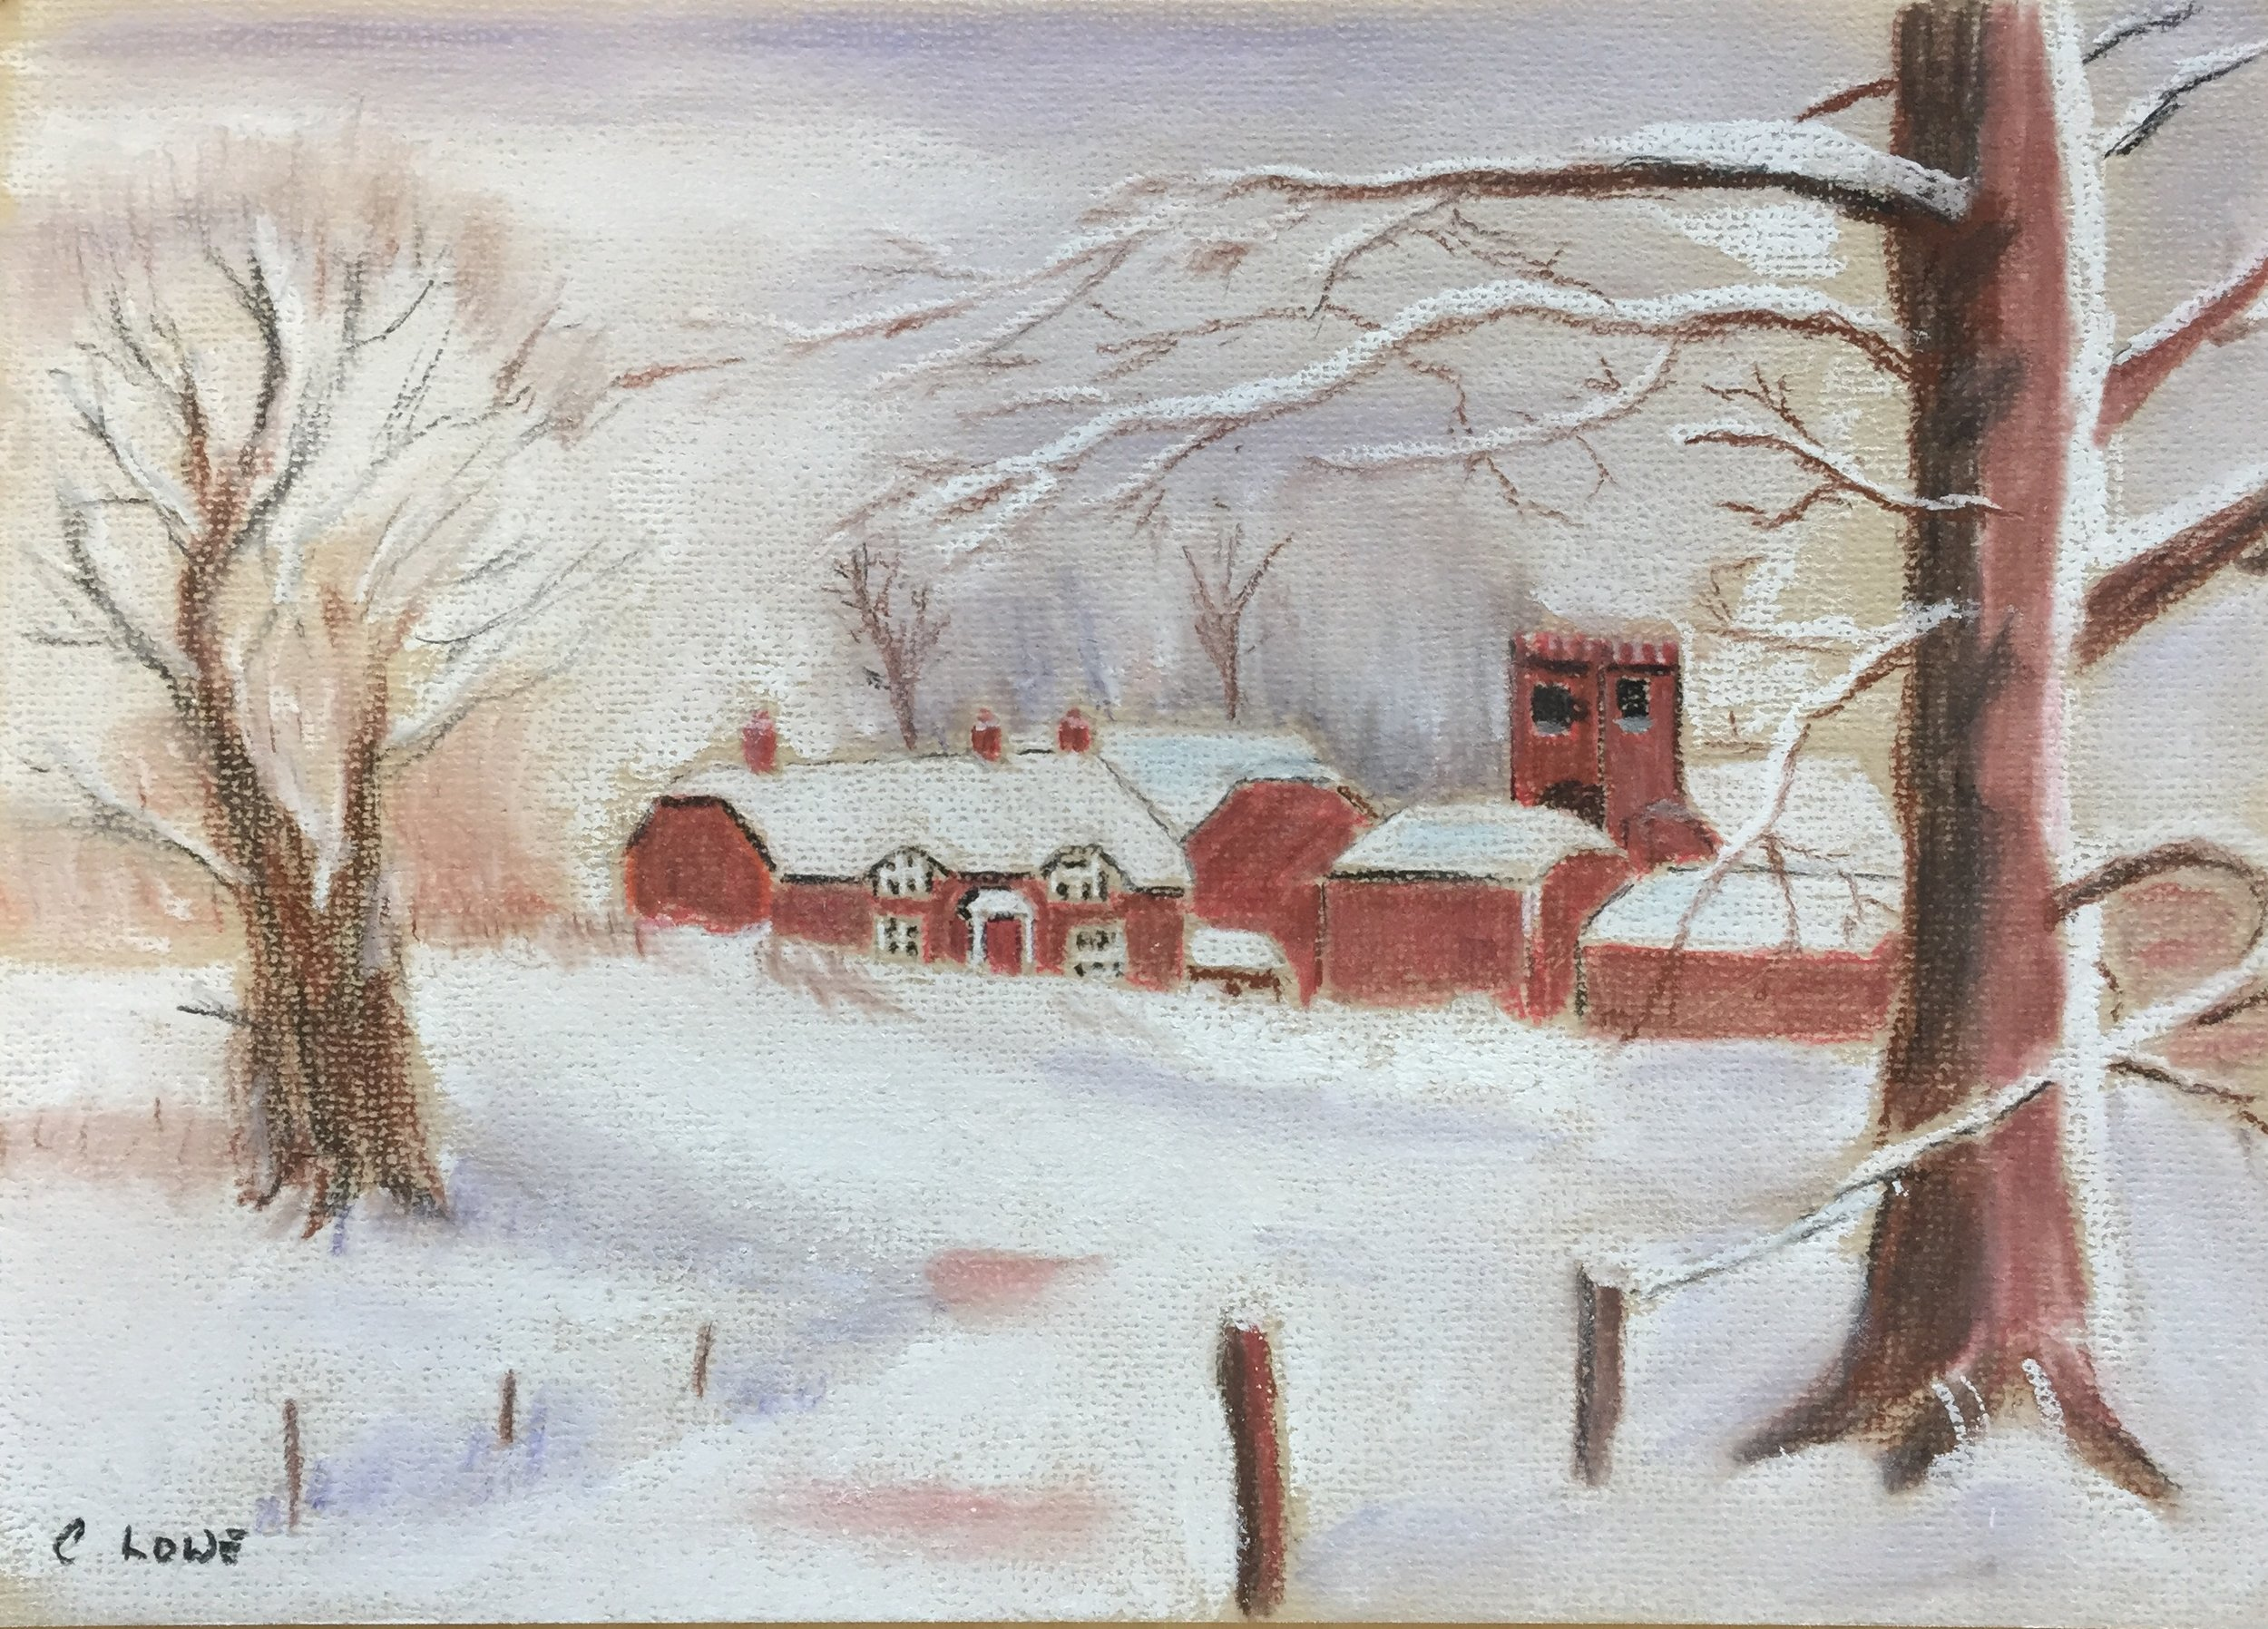 Snow in the village - Pastel.